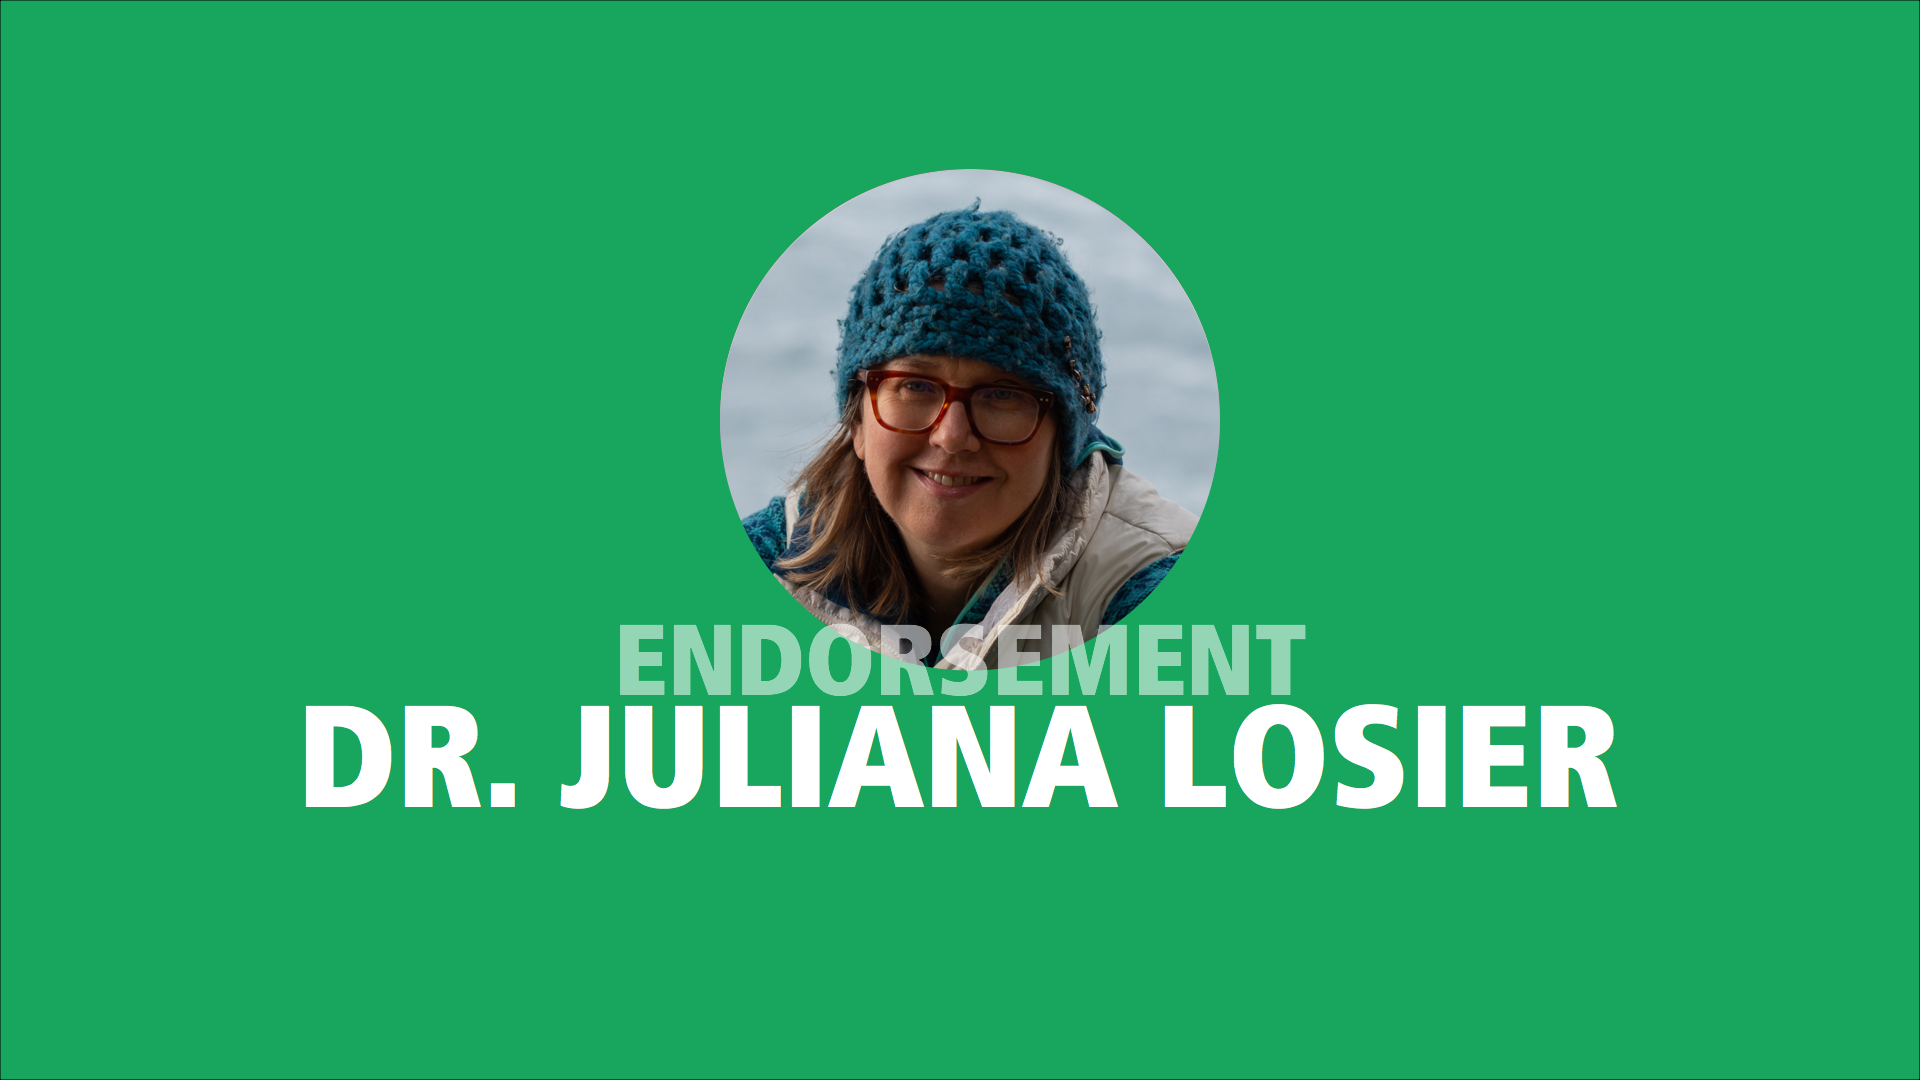 Dr. Juliana Losier endorses Adam Olsen